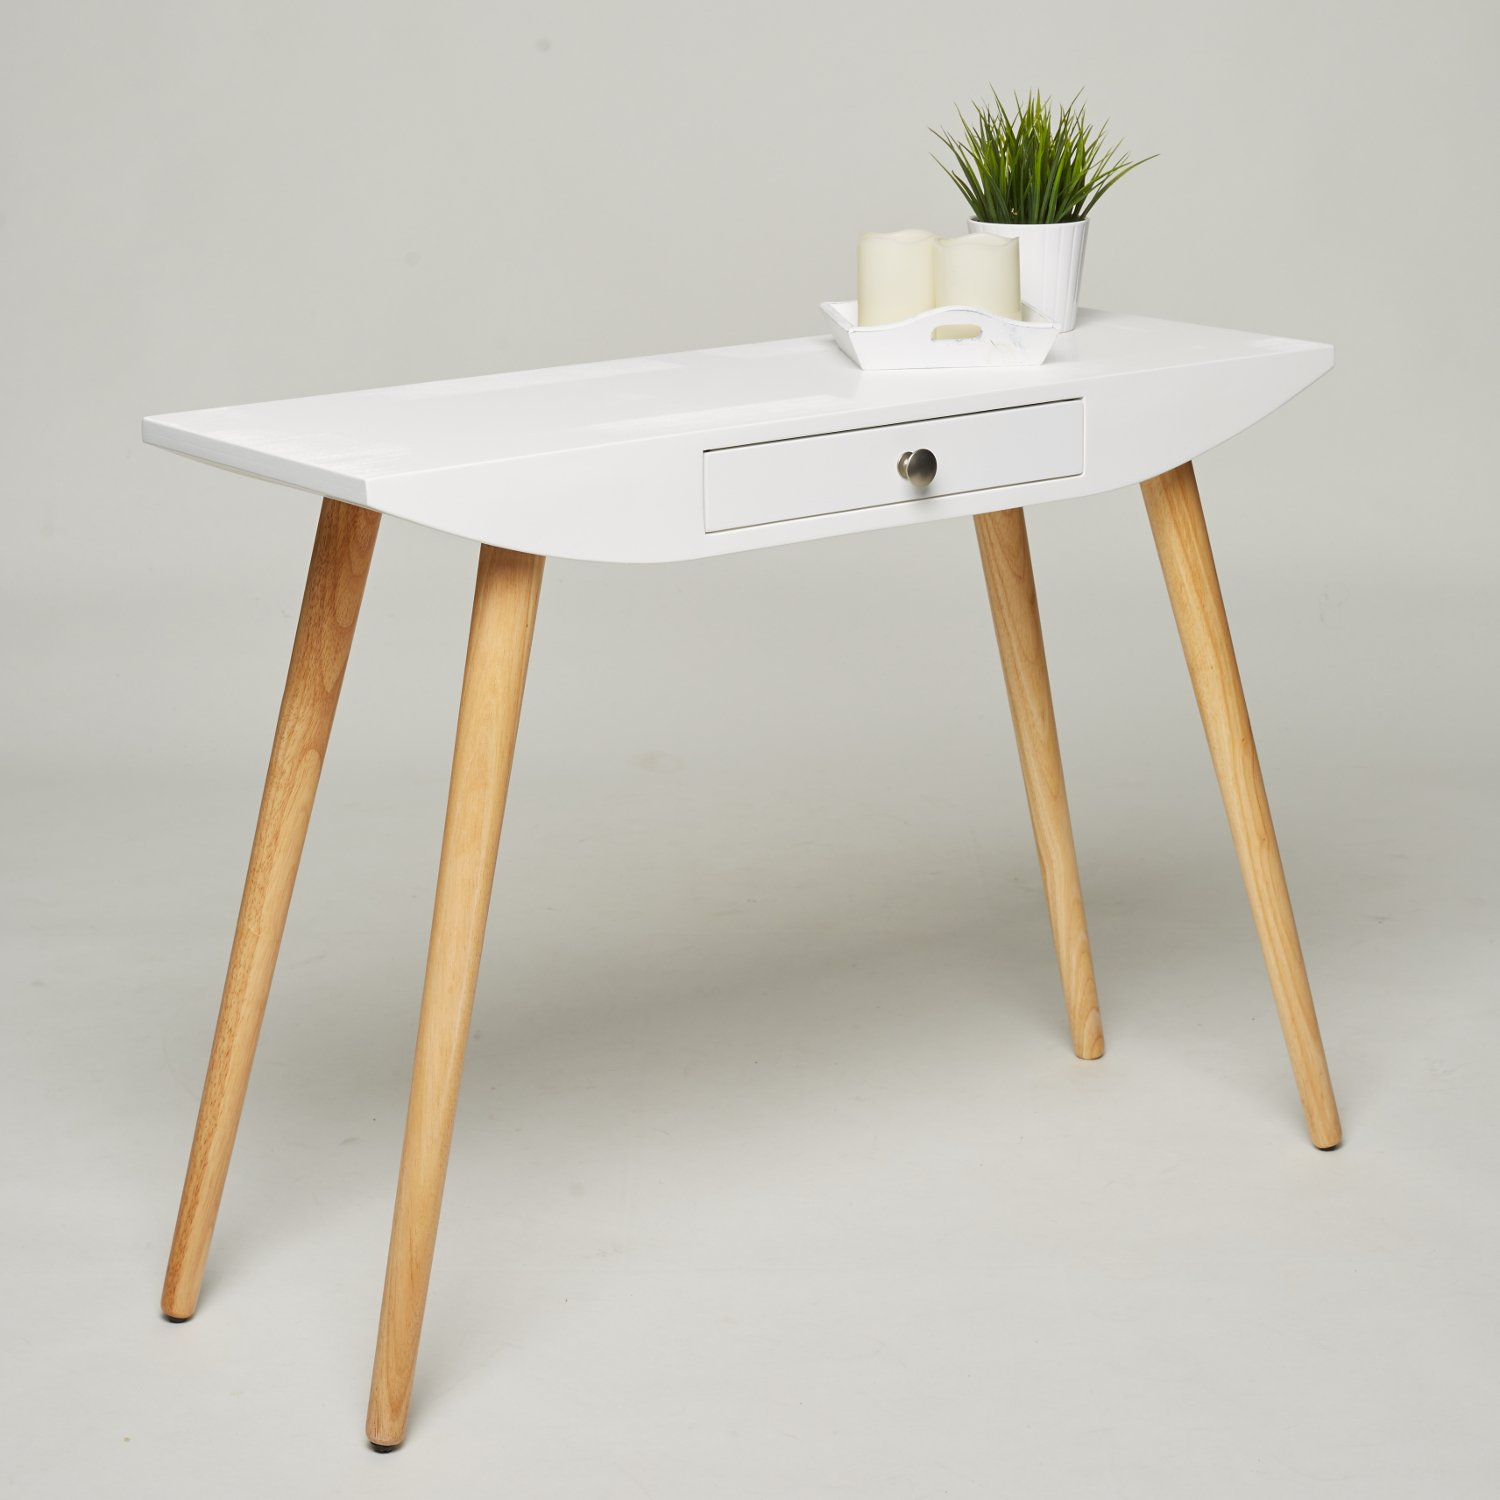 Genial Konsolentische Modern Referenz Von Green Spirit Console Table/dressing Table/desk - White